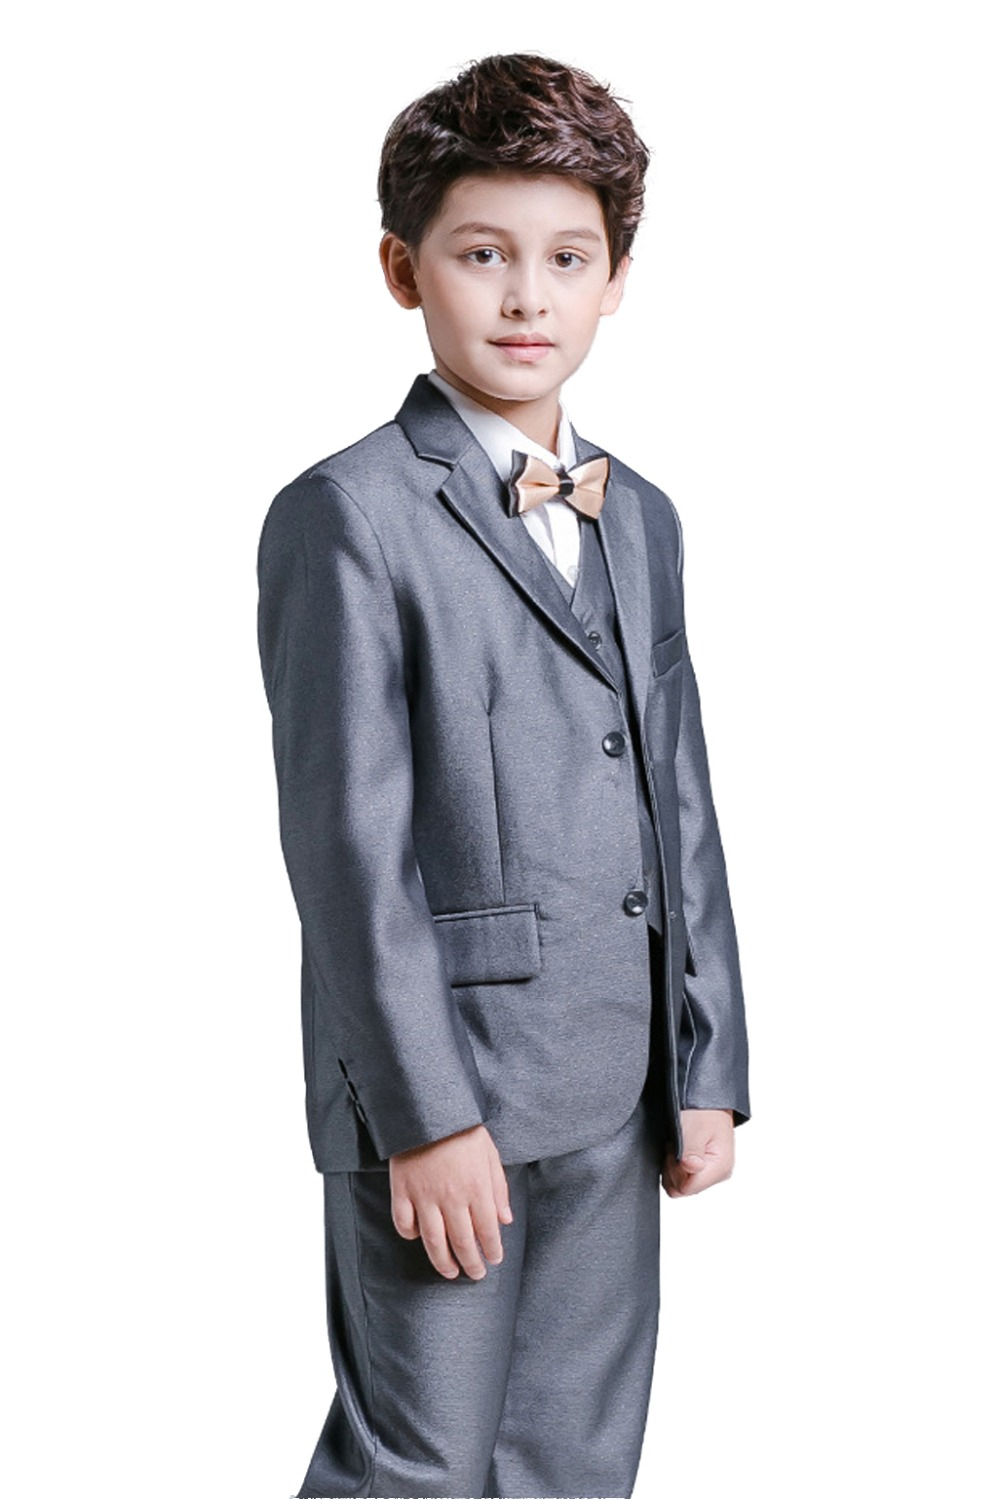 5 Piece Boys Dark Grey Suits Slim Fit Ring Bearer Suit For Boys Formal Classic Costume Weddings цена 2017